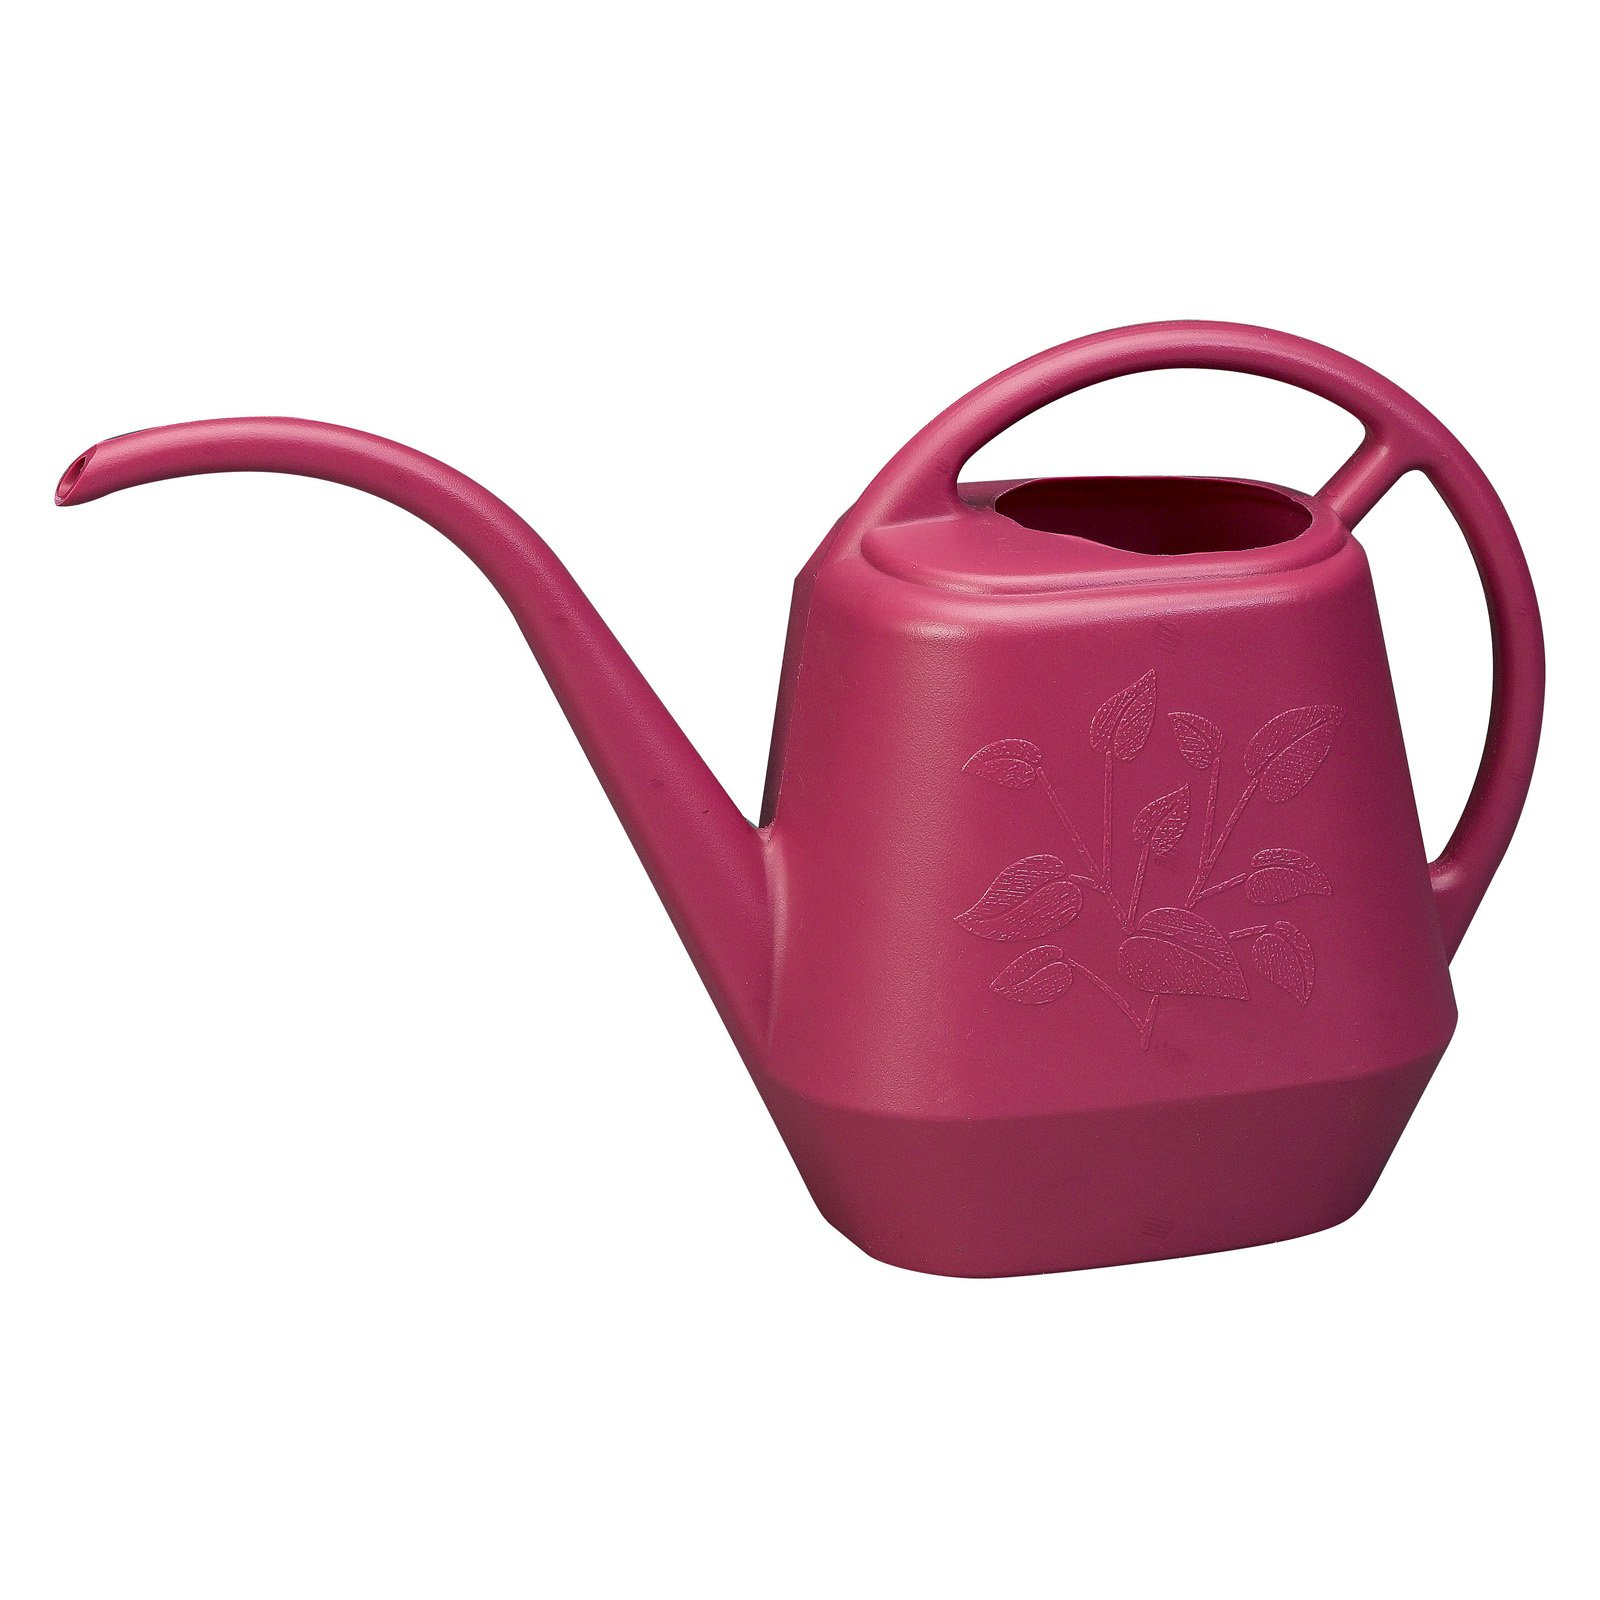 Bloem 144 oz. Aqua Rite Watering Can Set of 6 by Bloem